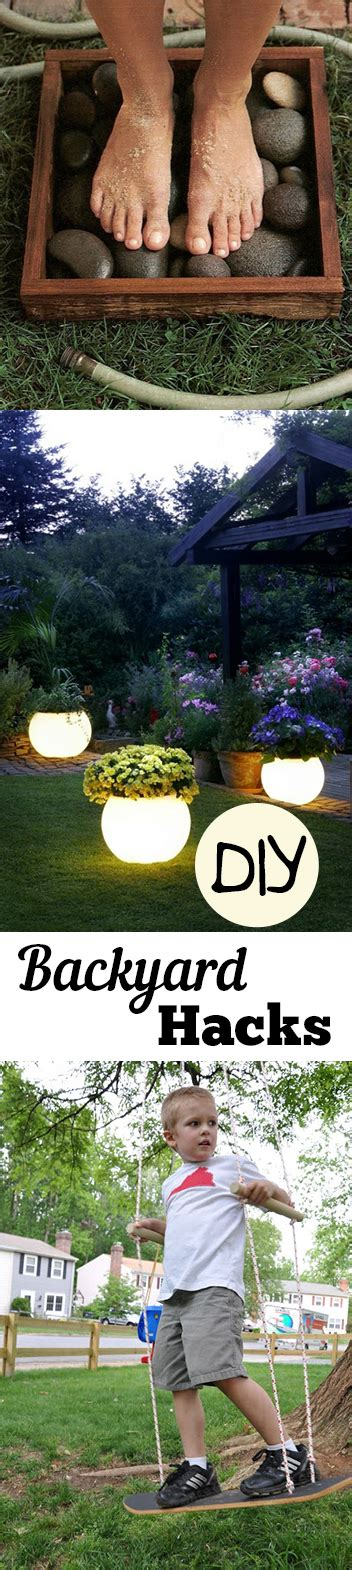 backyard hacks diy backyard hacks my list of lists